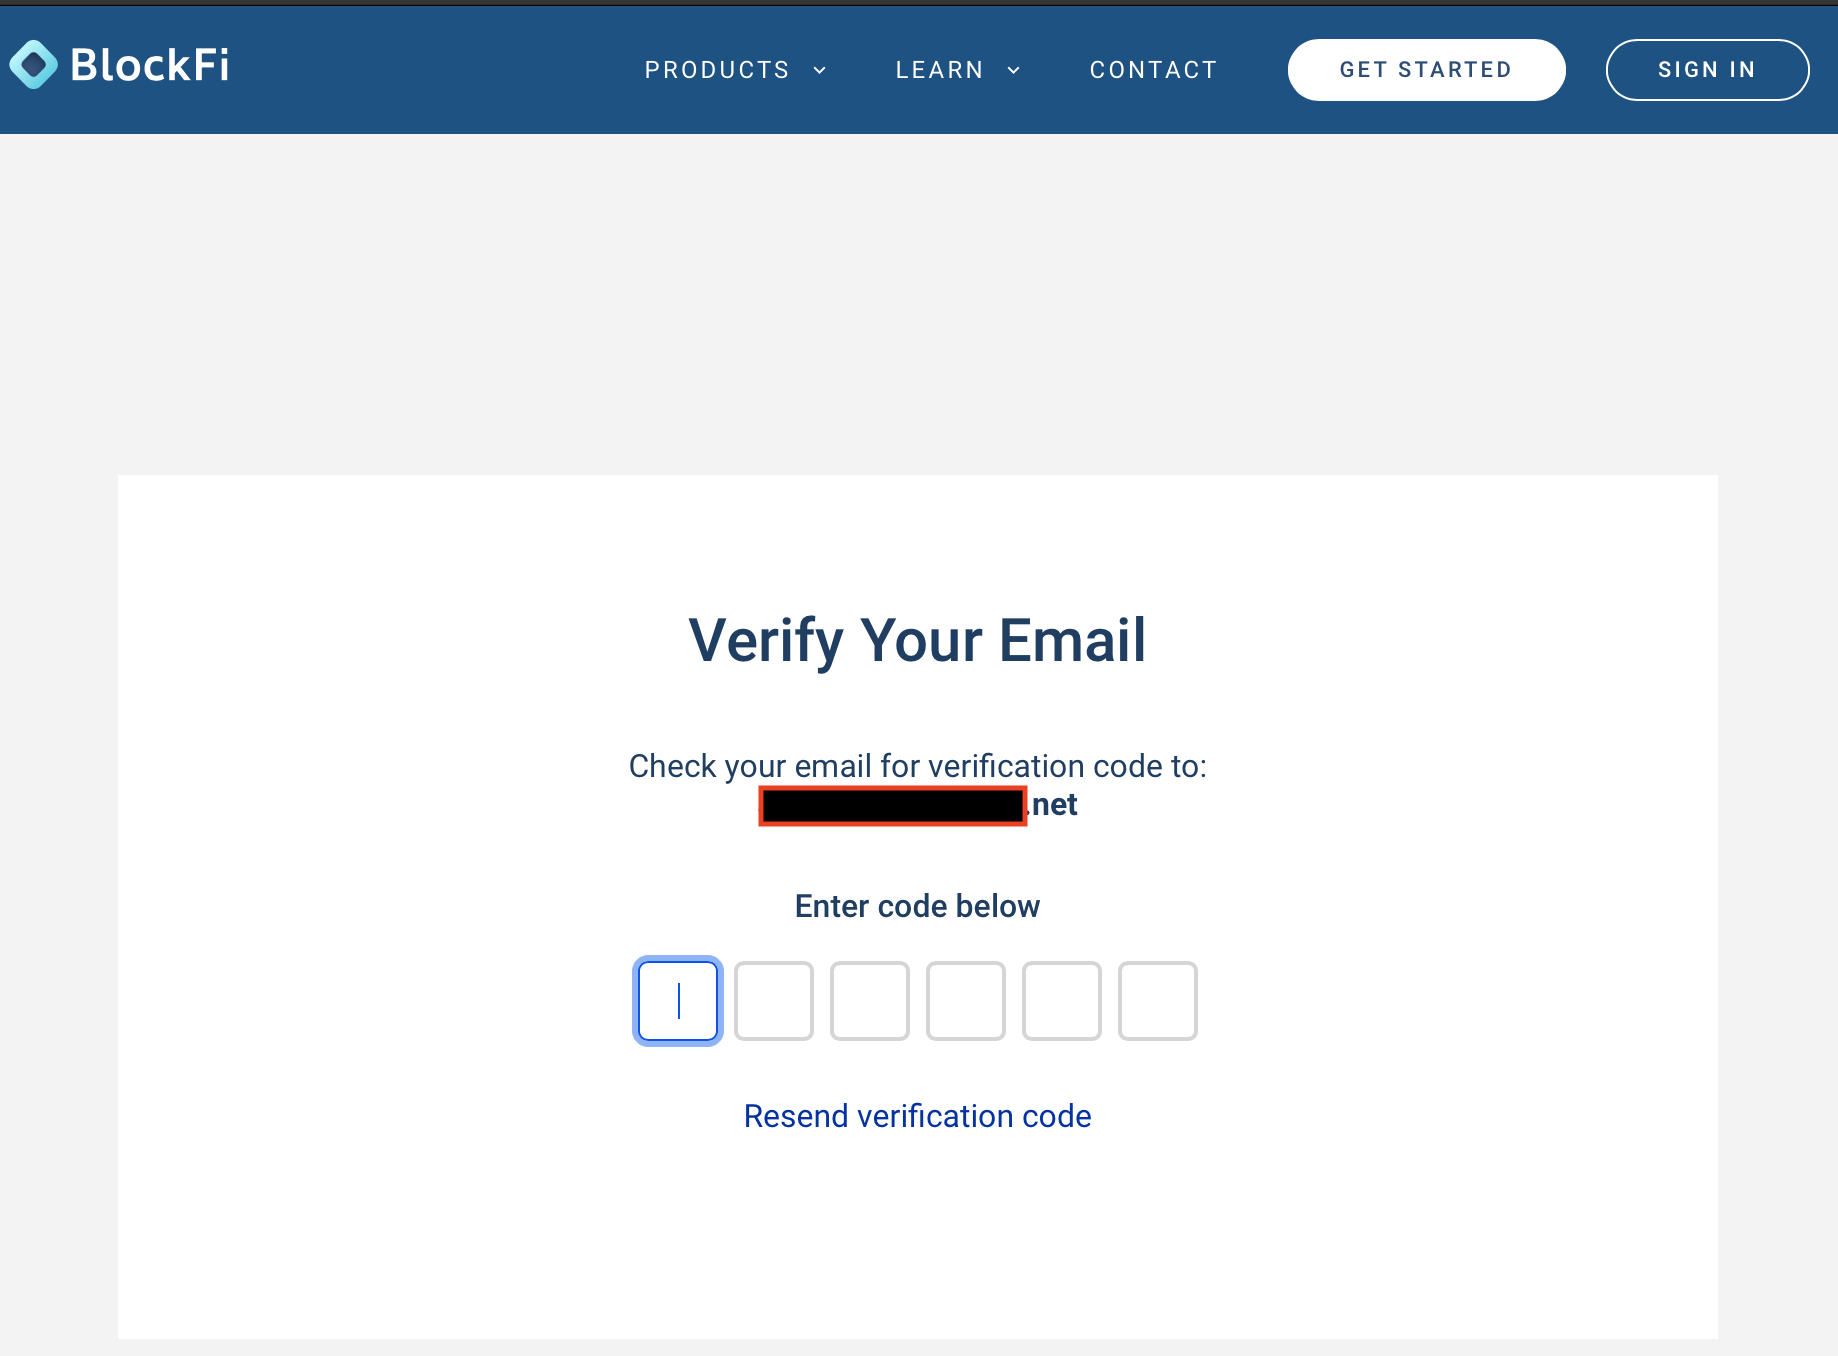 BlockFi verify email